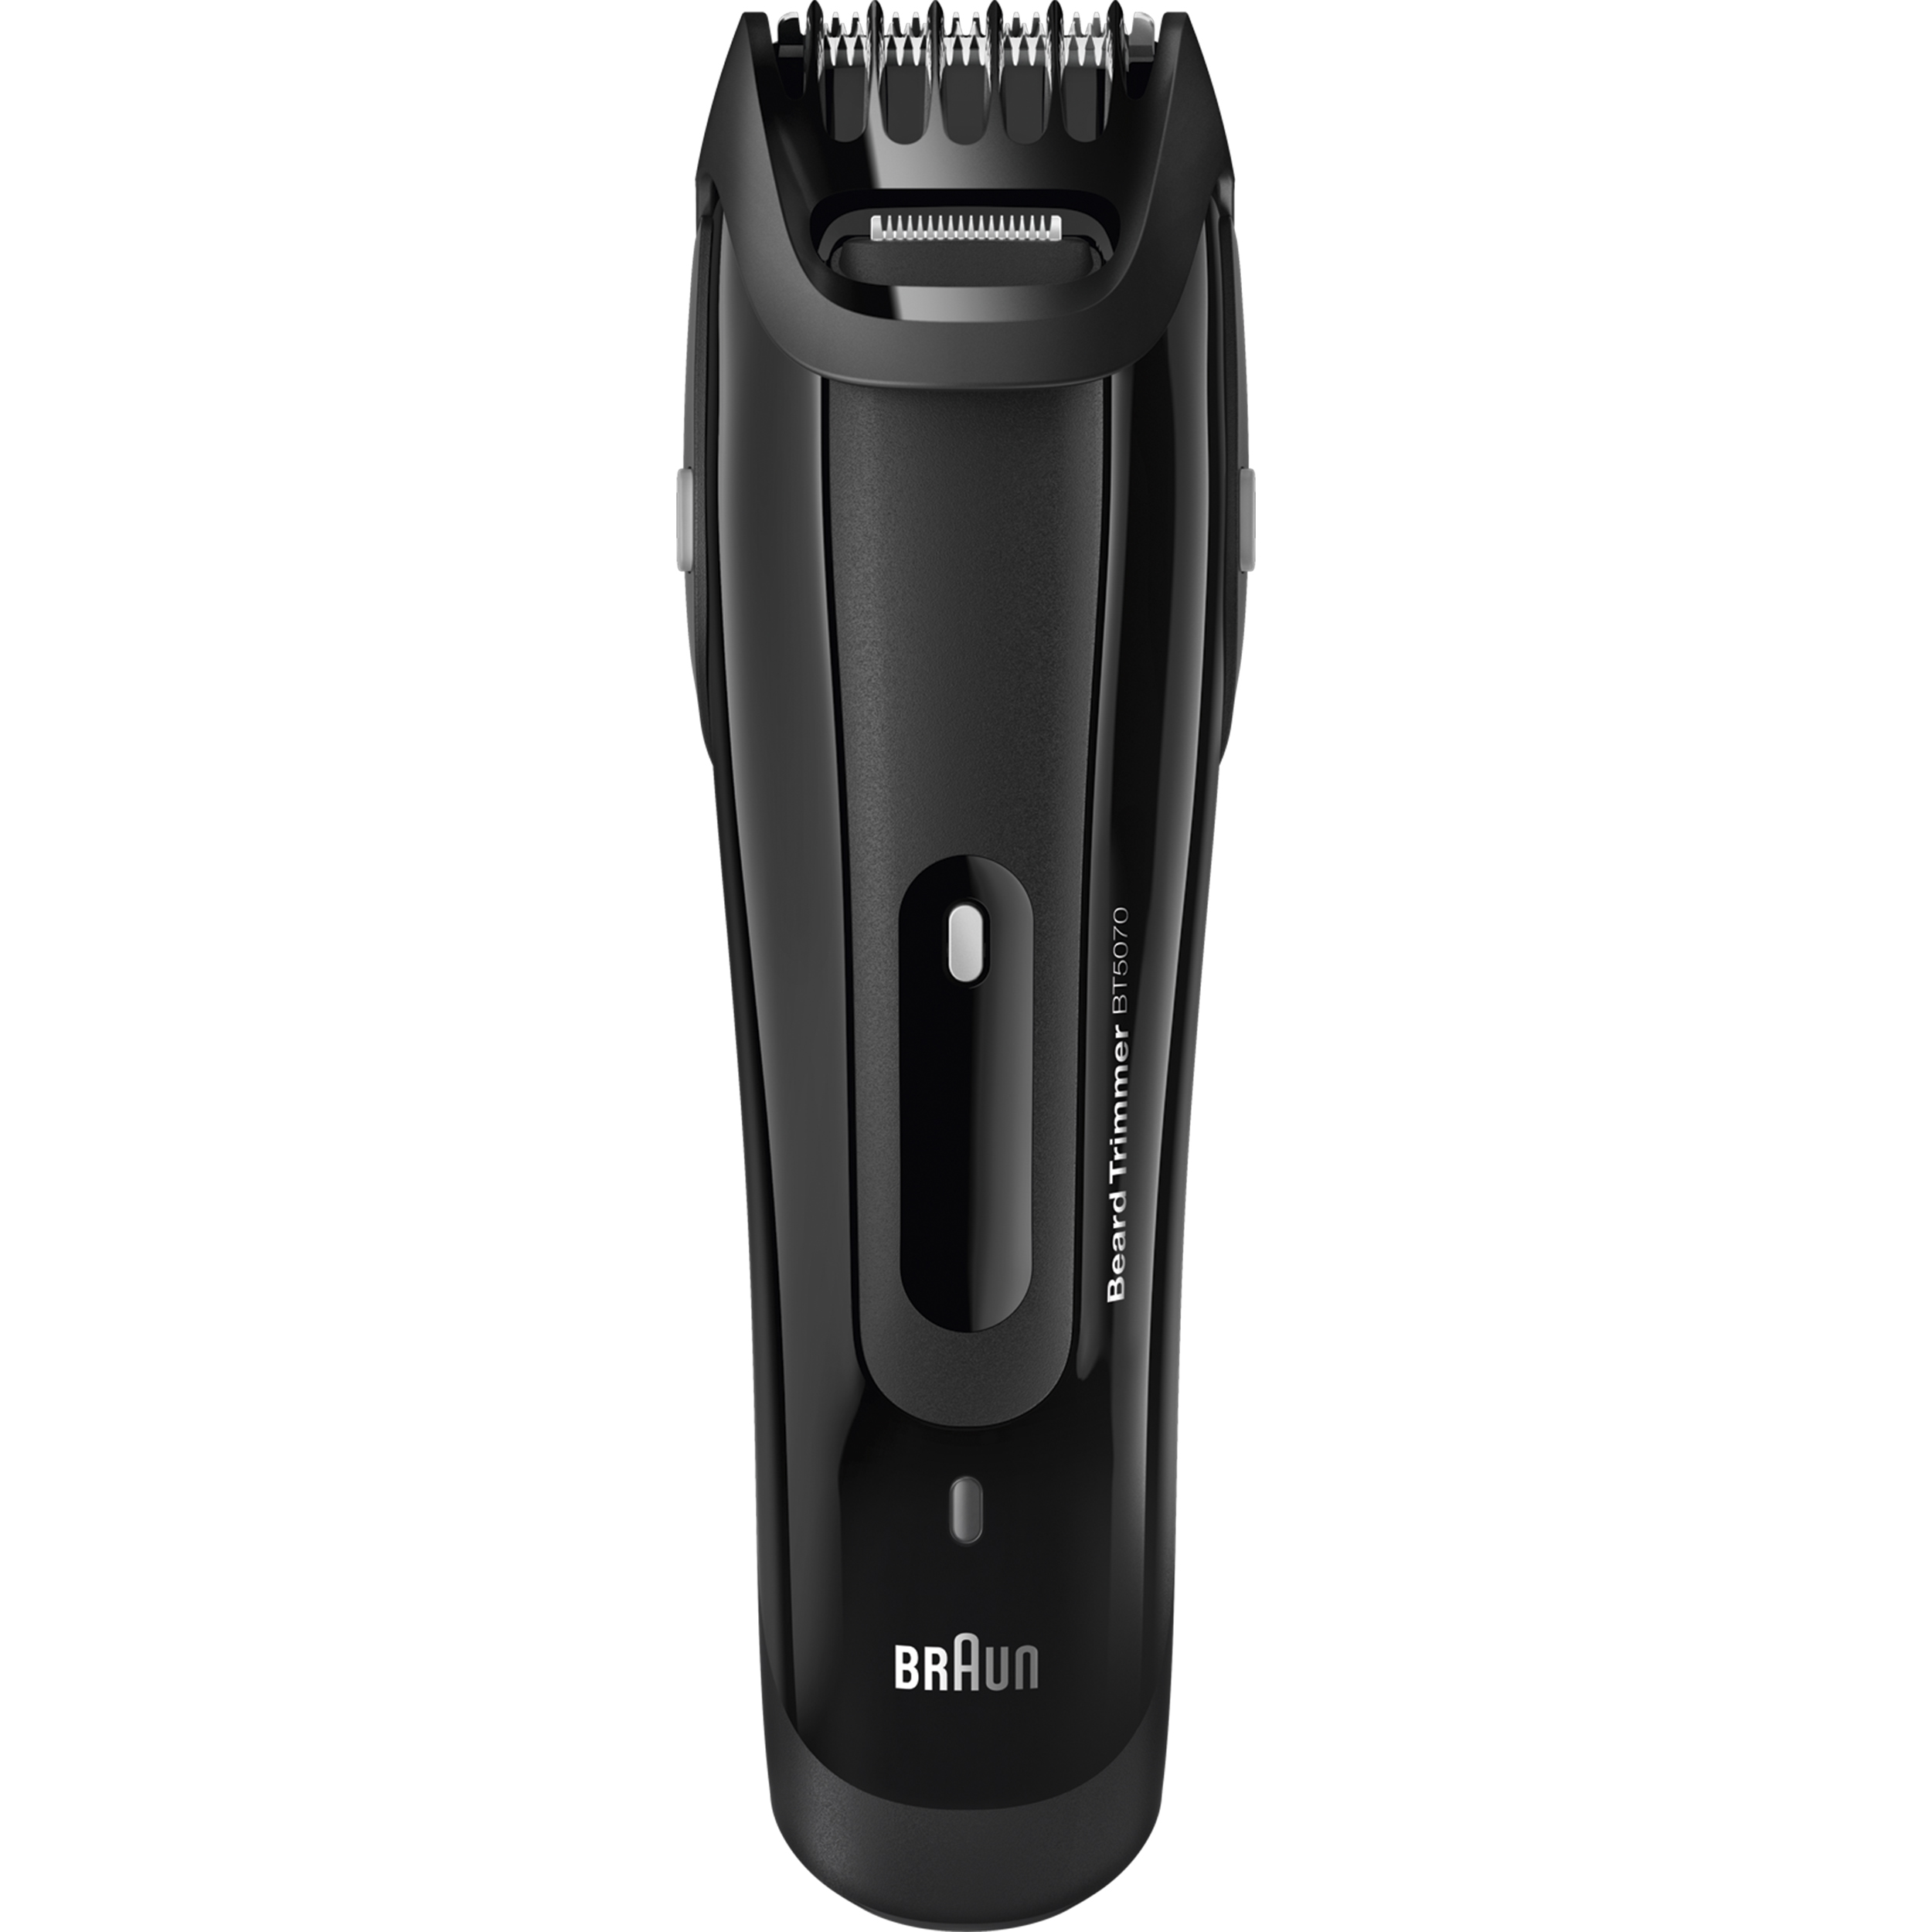 Braun Beard Trimmer BT5070 - Ultimate precision for the perfect beard style with 0.5mm step sizes